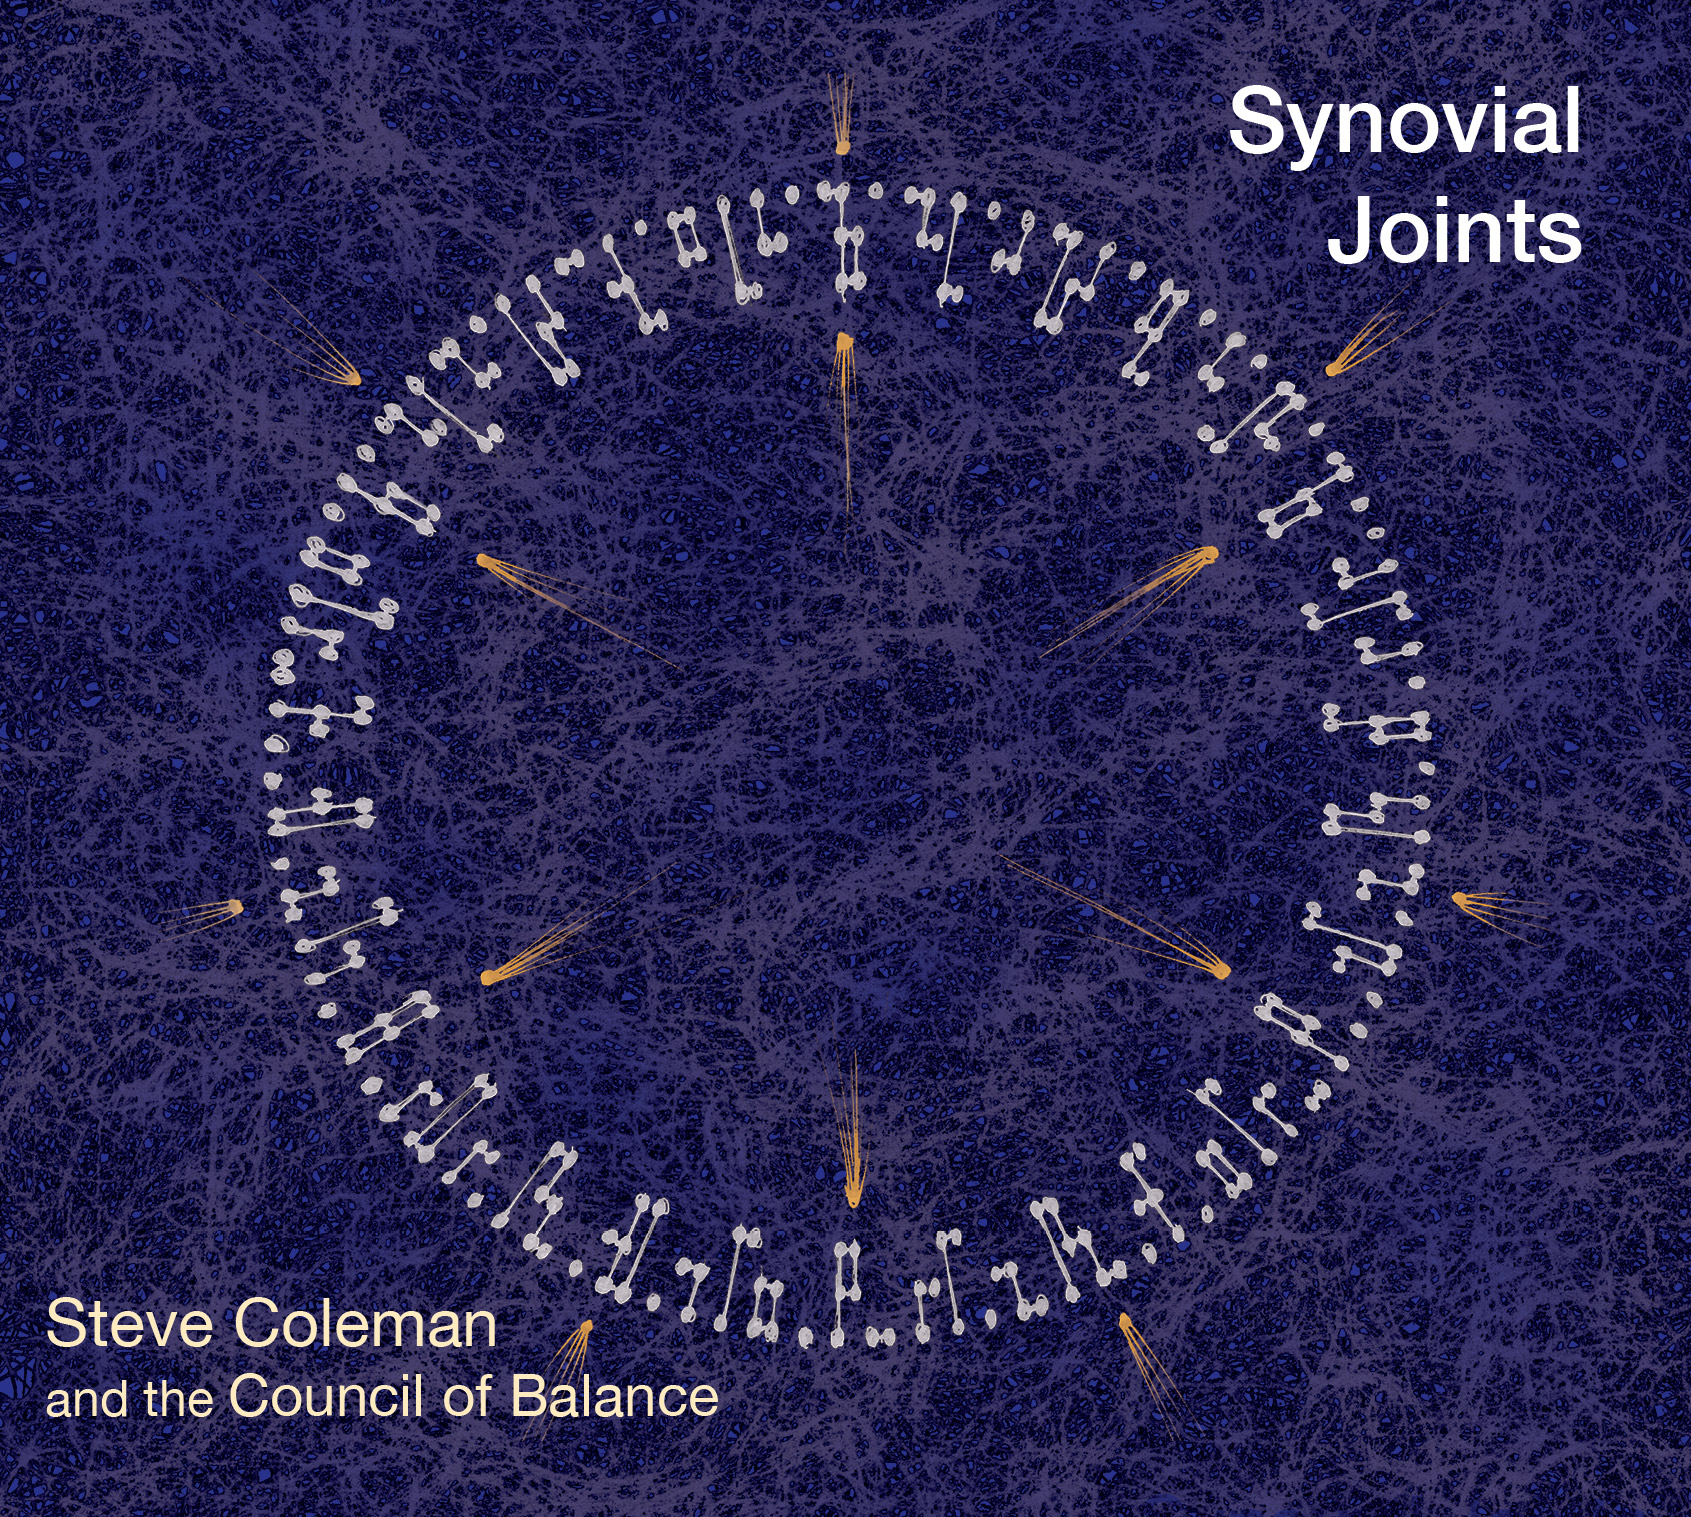 Steve Coleman and the Council of Balance - Synovial Joints